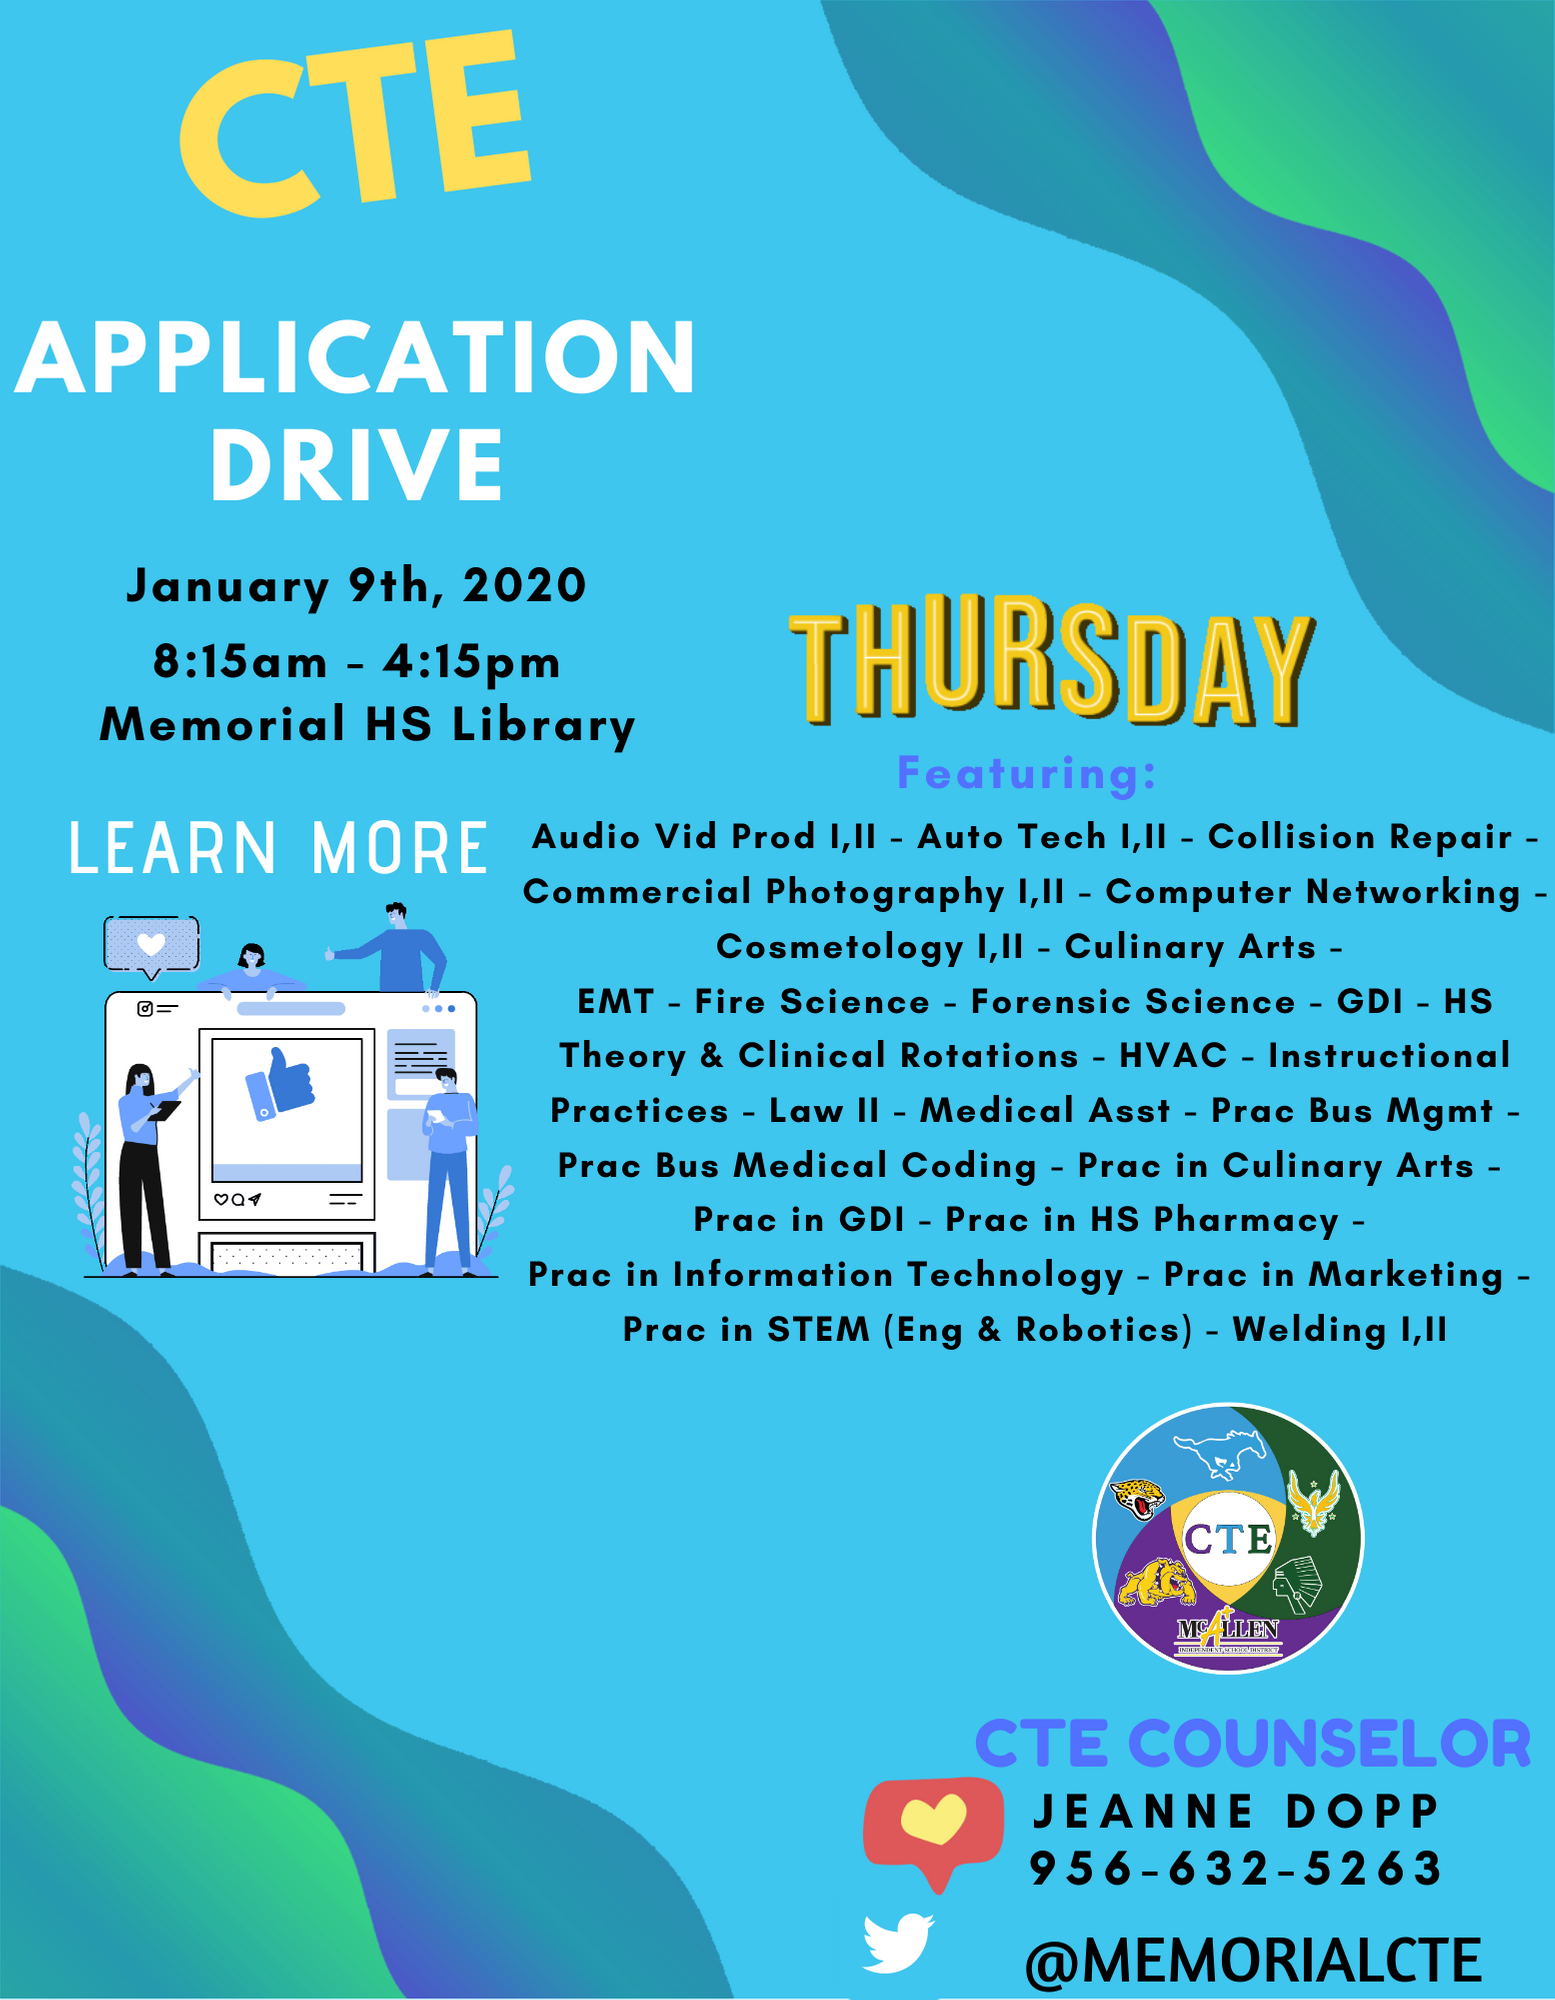 Application Drive Flyer